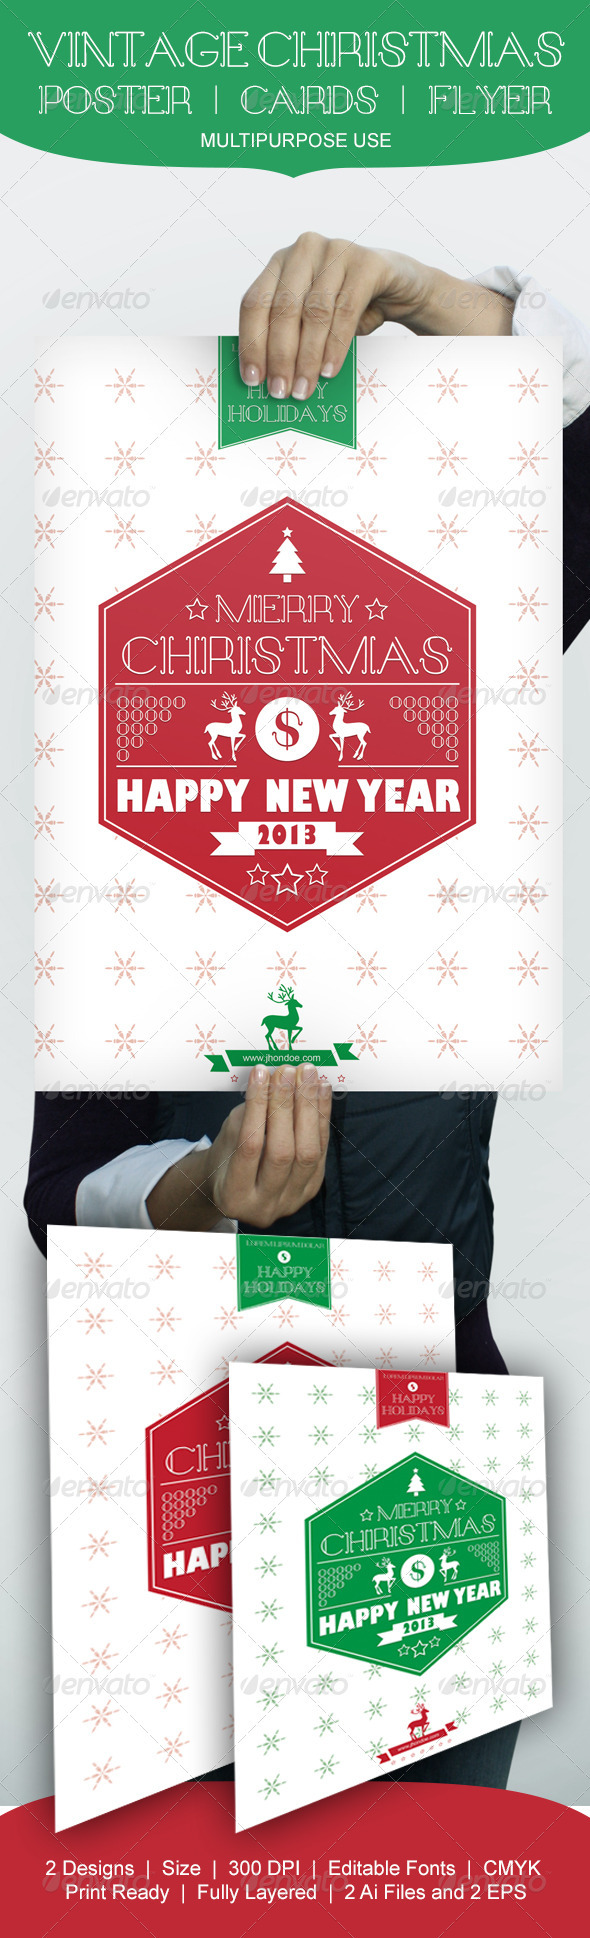 GraphicRiver Vintage Christmas Poster Cards Flyer 3566803